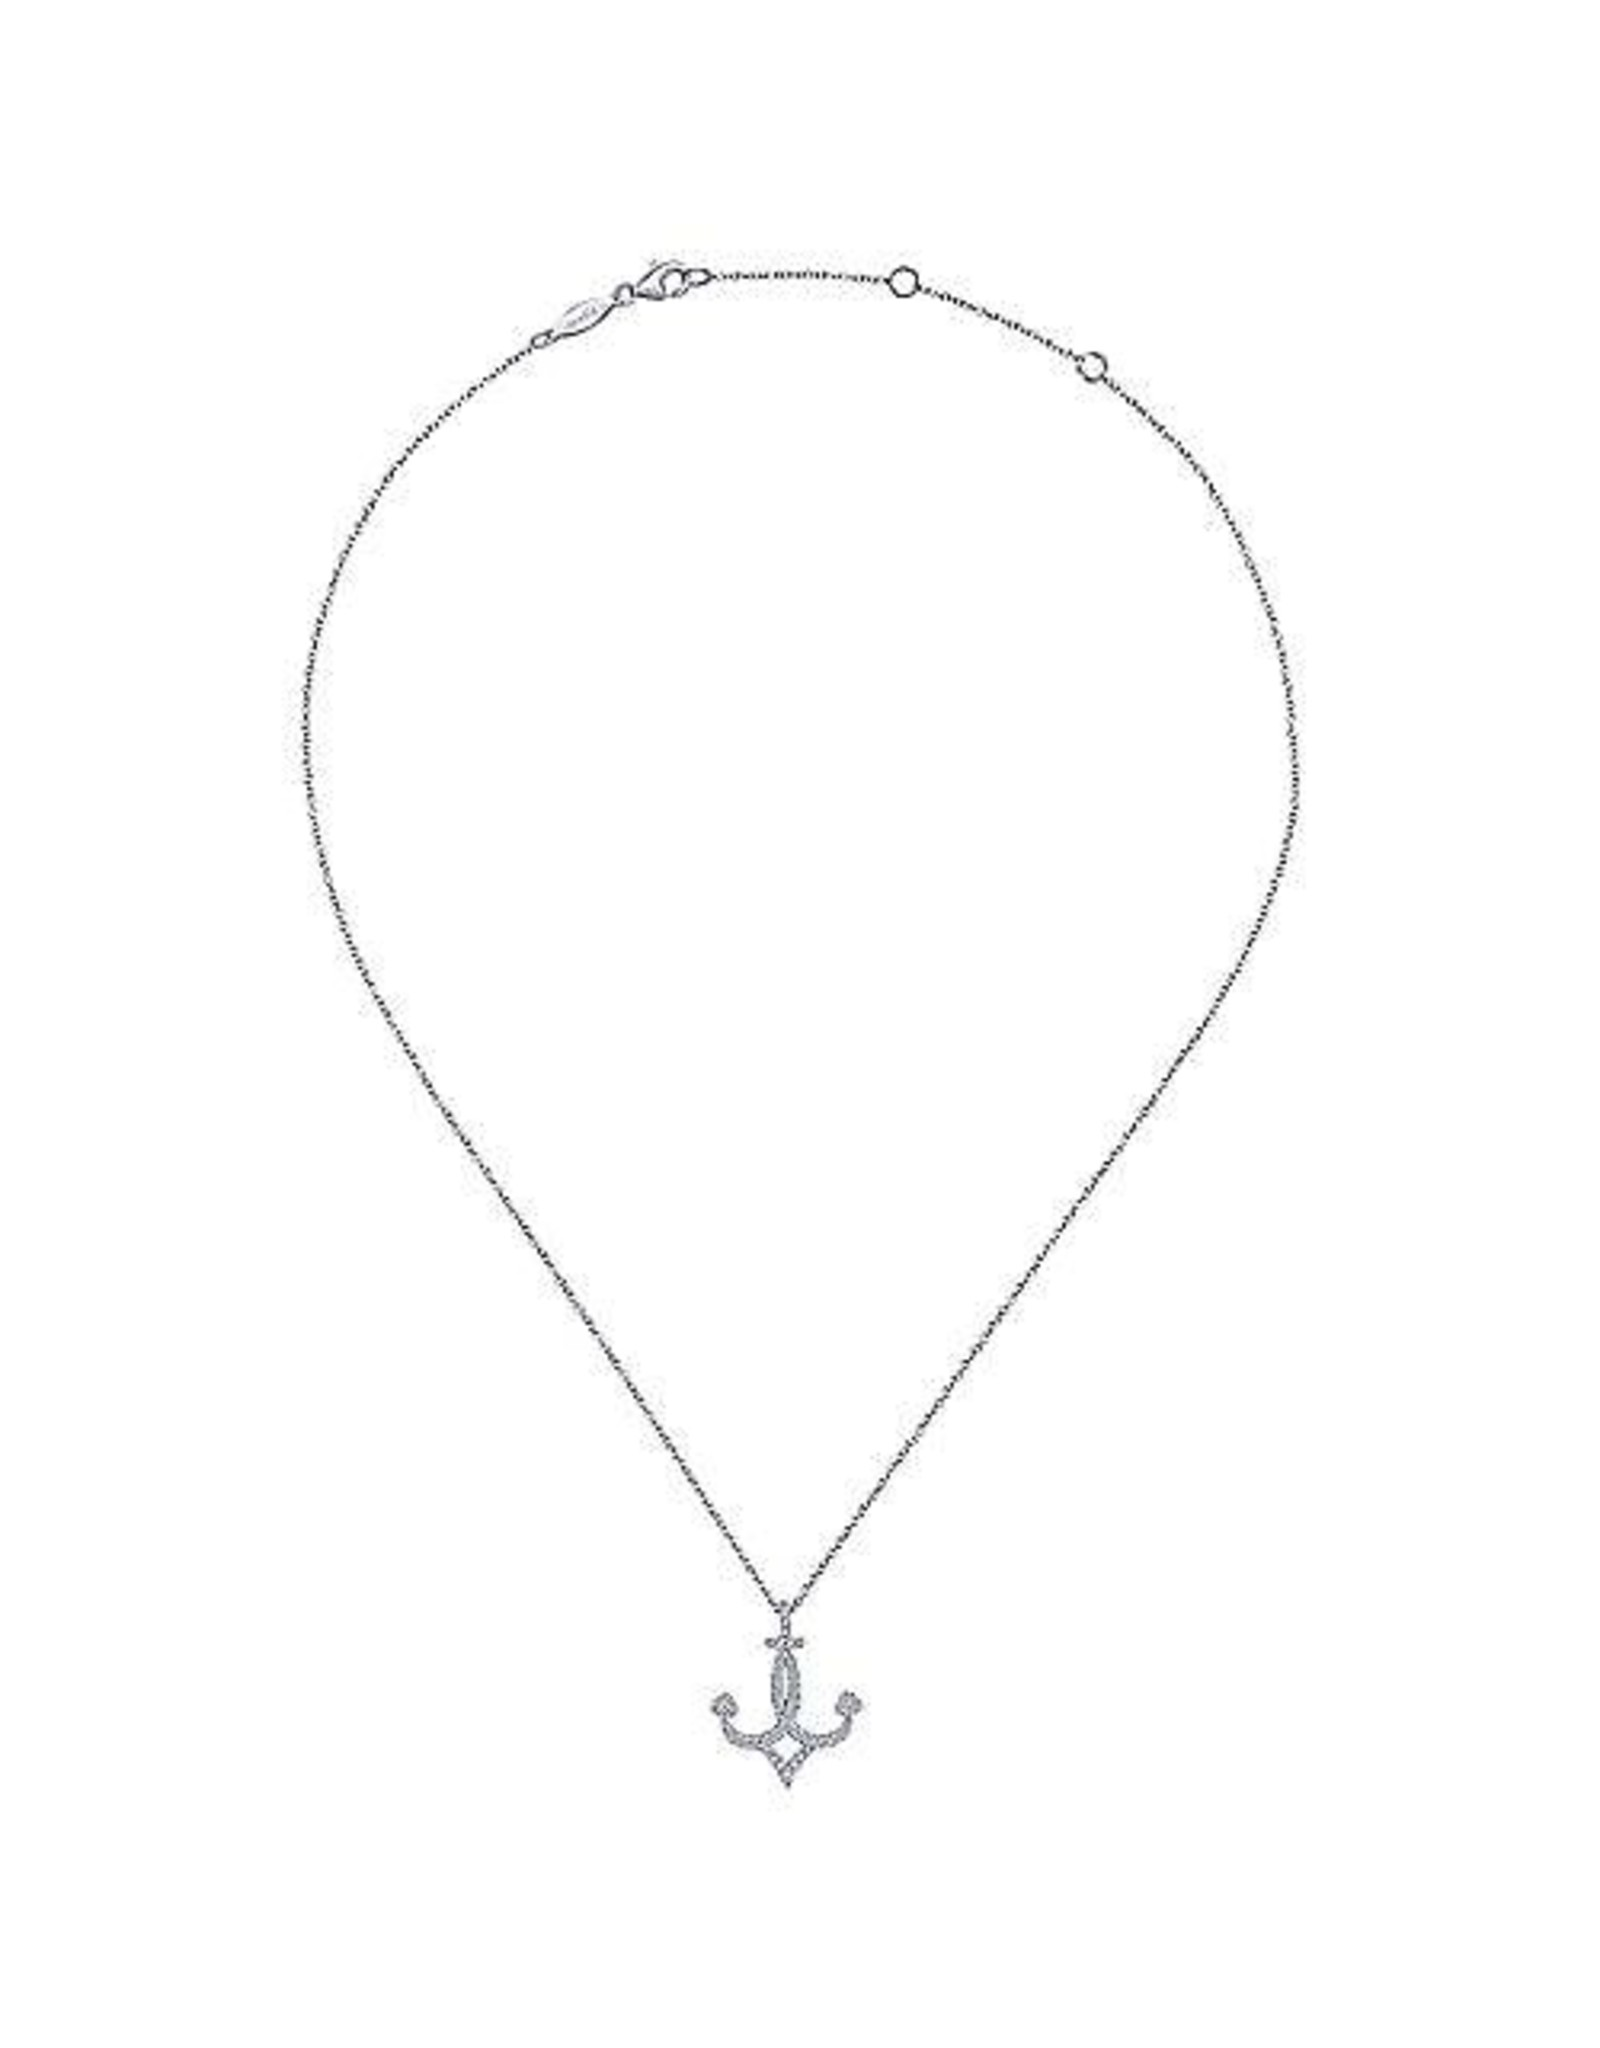 14K White Gold Diamond Anchor Necklace, D: 0.26ct